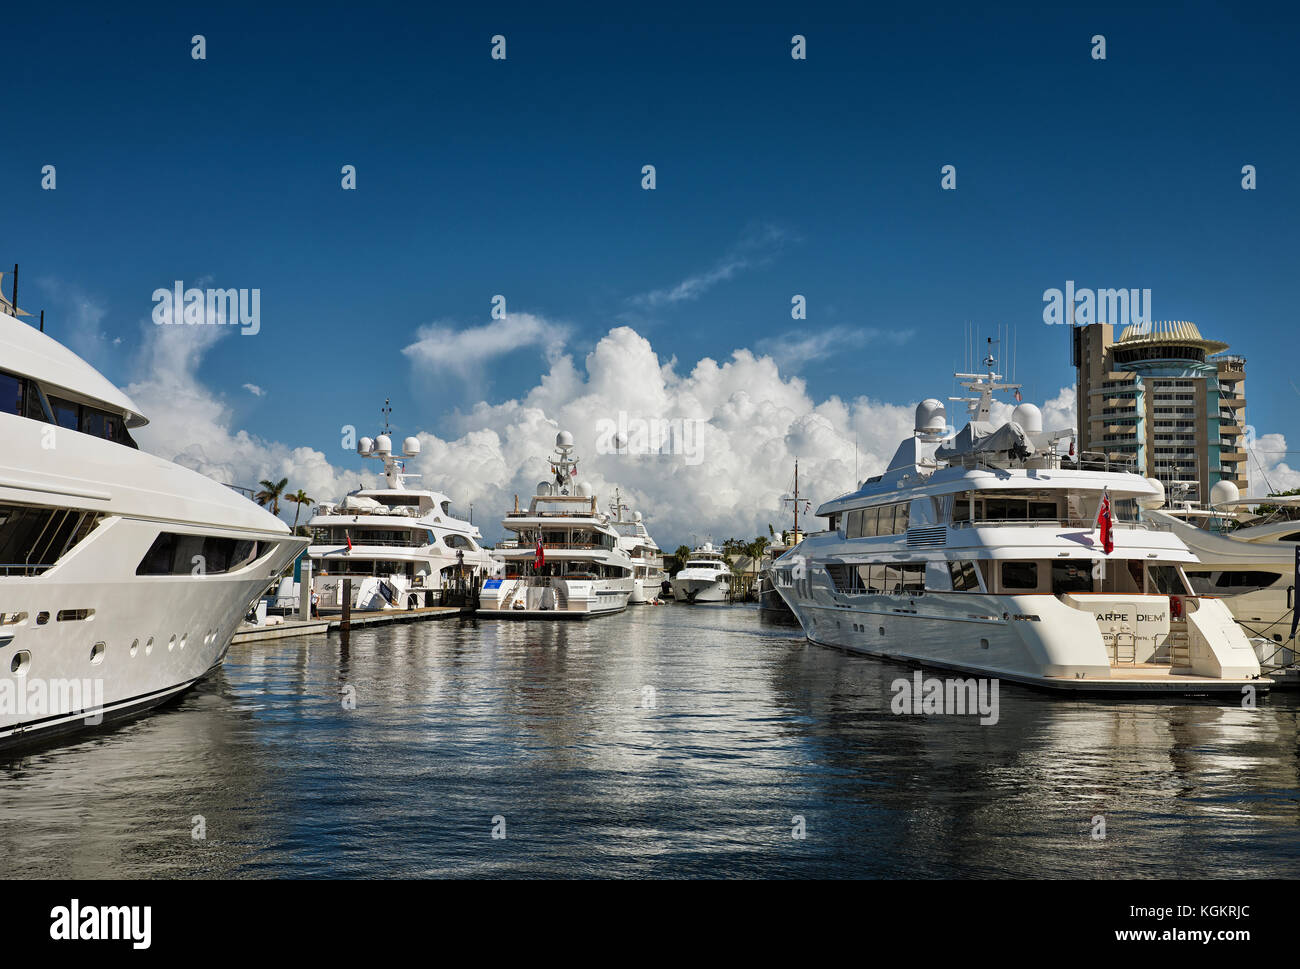 Yachts at the Ft. Lauderdale Boat Show Stock Photo